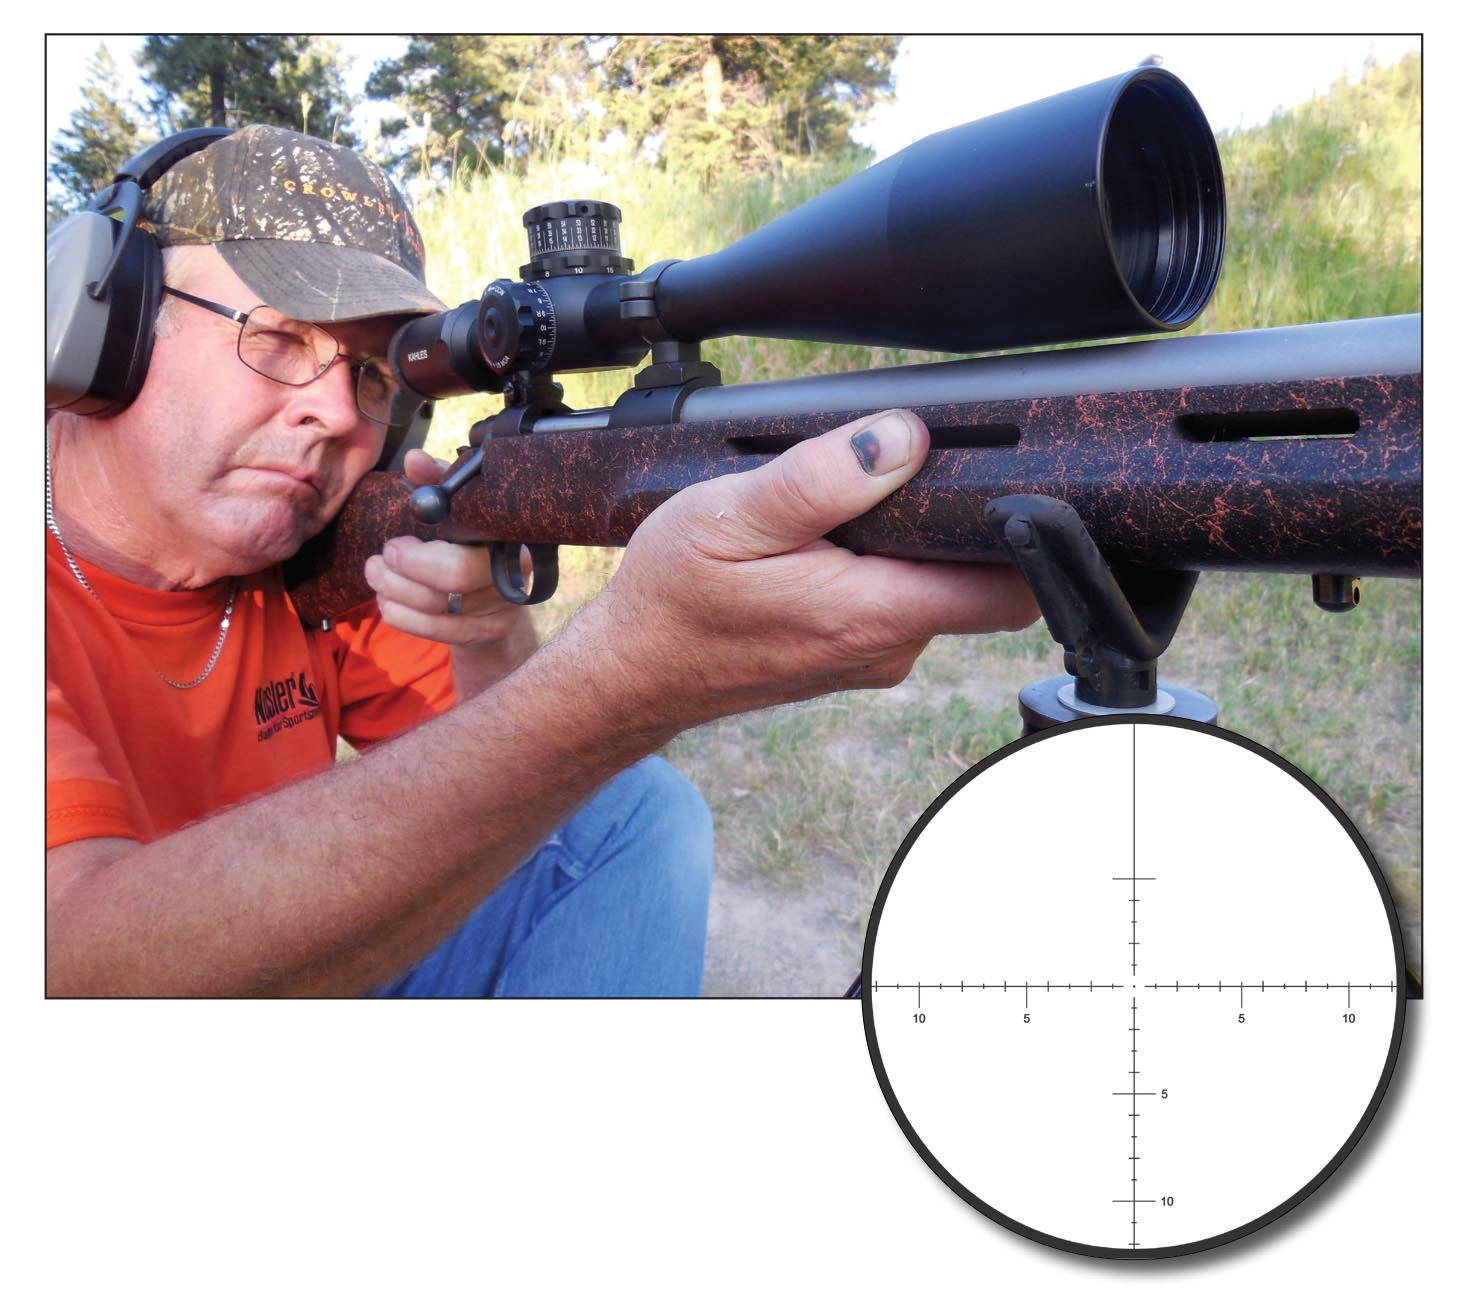 The Kahles K 1050 10-50x 56mm scope includes several features to aid in long-range shooting.